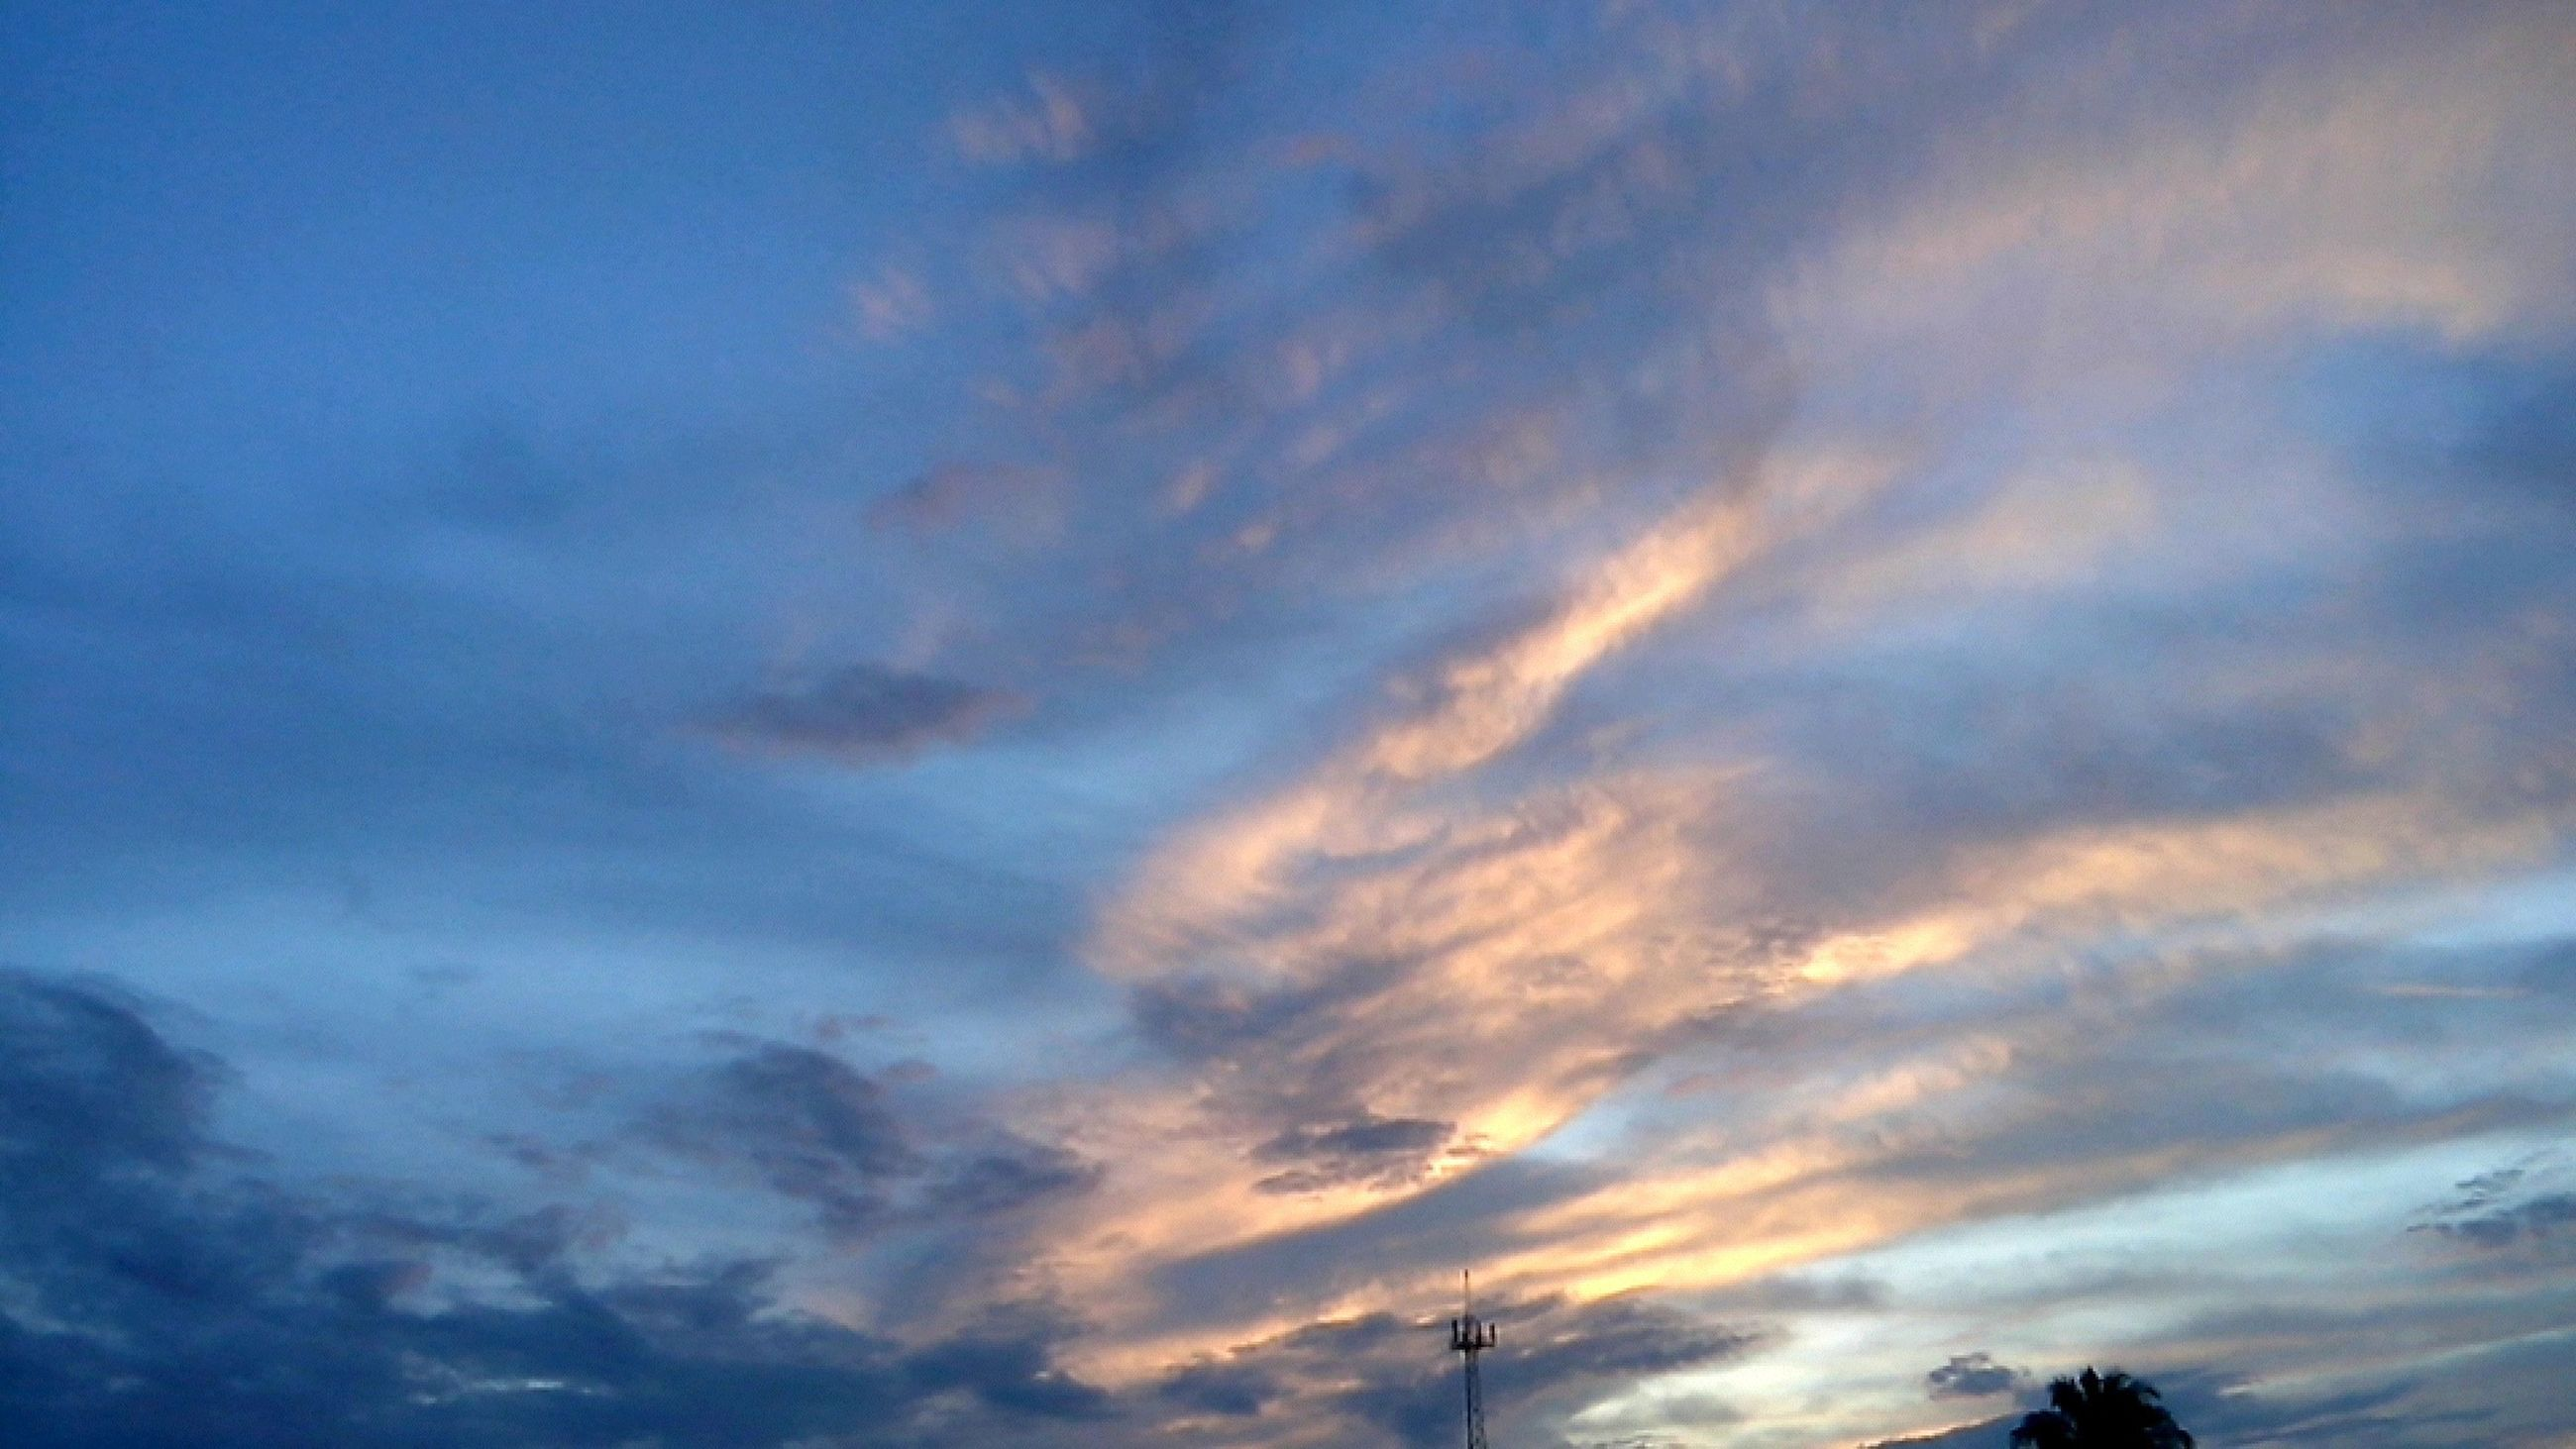 low angle view, sky, cloud - sky, cloudy, beauty in nature, tranquility, scenics, nature, silhouette, tranquil scene, cloud, sunset, blue, cloudscape, idyllic, dramatic sky, weather, outdoors, no people, overcast